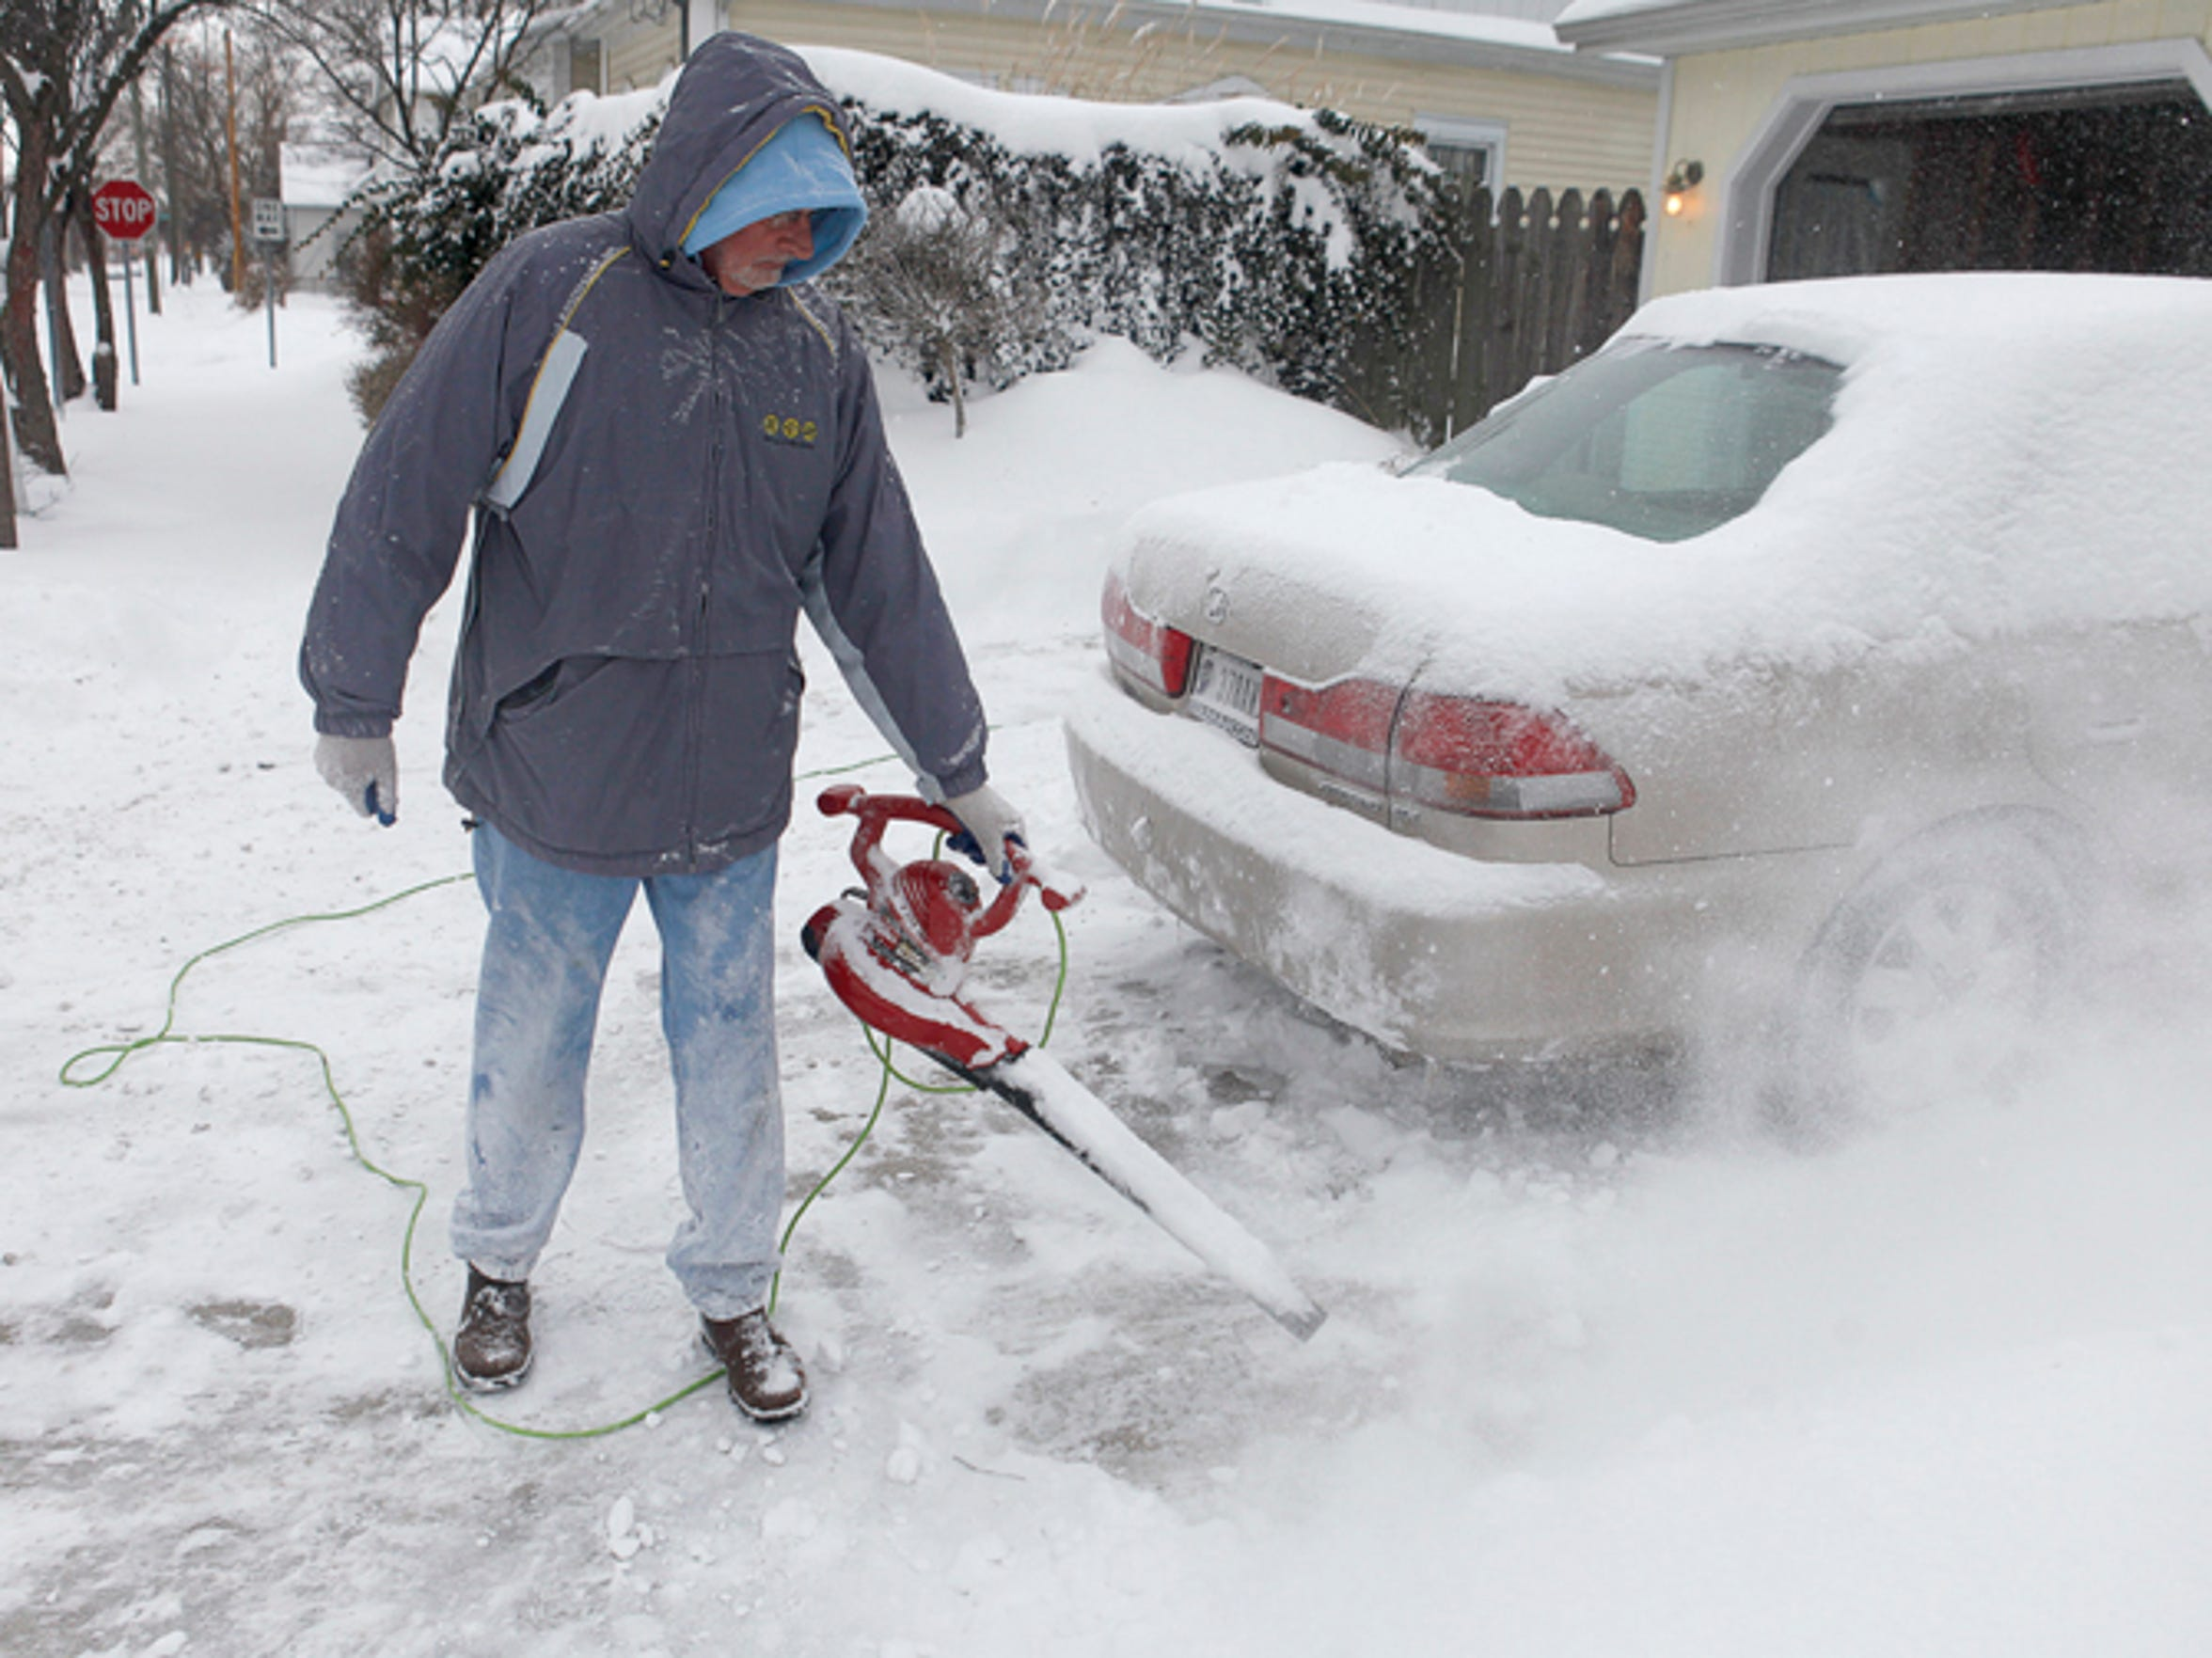 Darrell Hughes uses a leaf blower to clear snow from